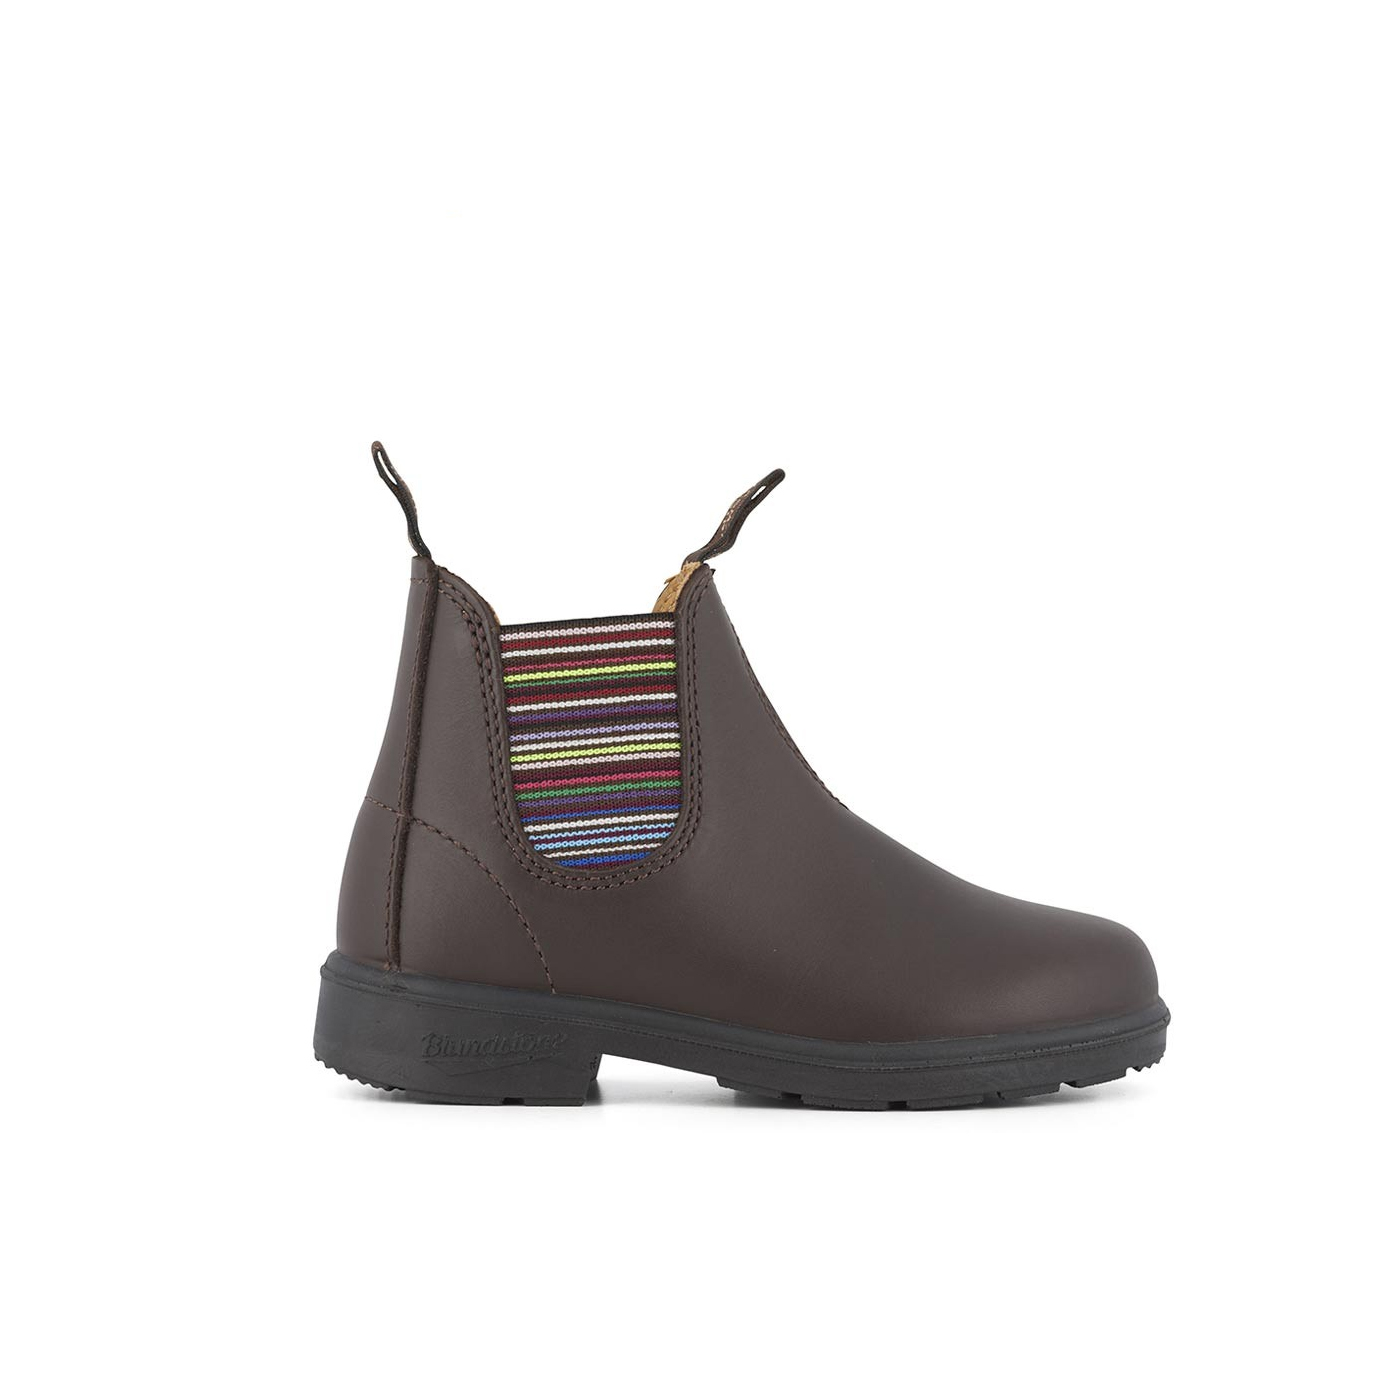 1413 Kids Boots - Brown / Stripes